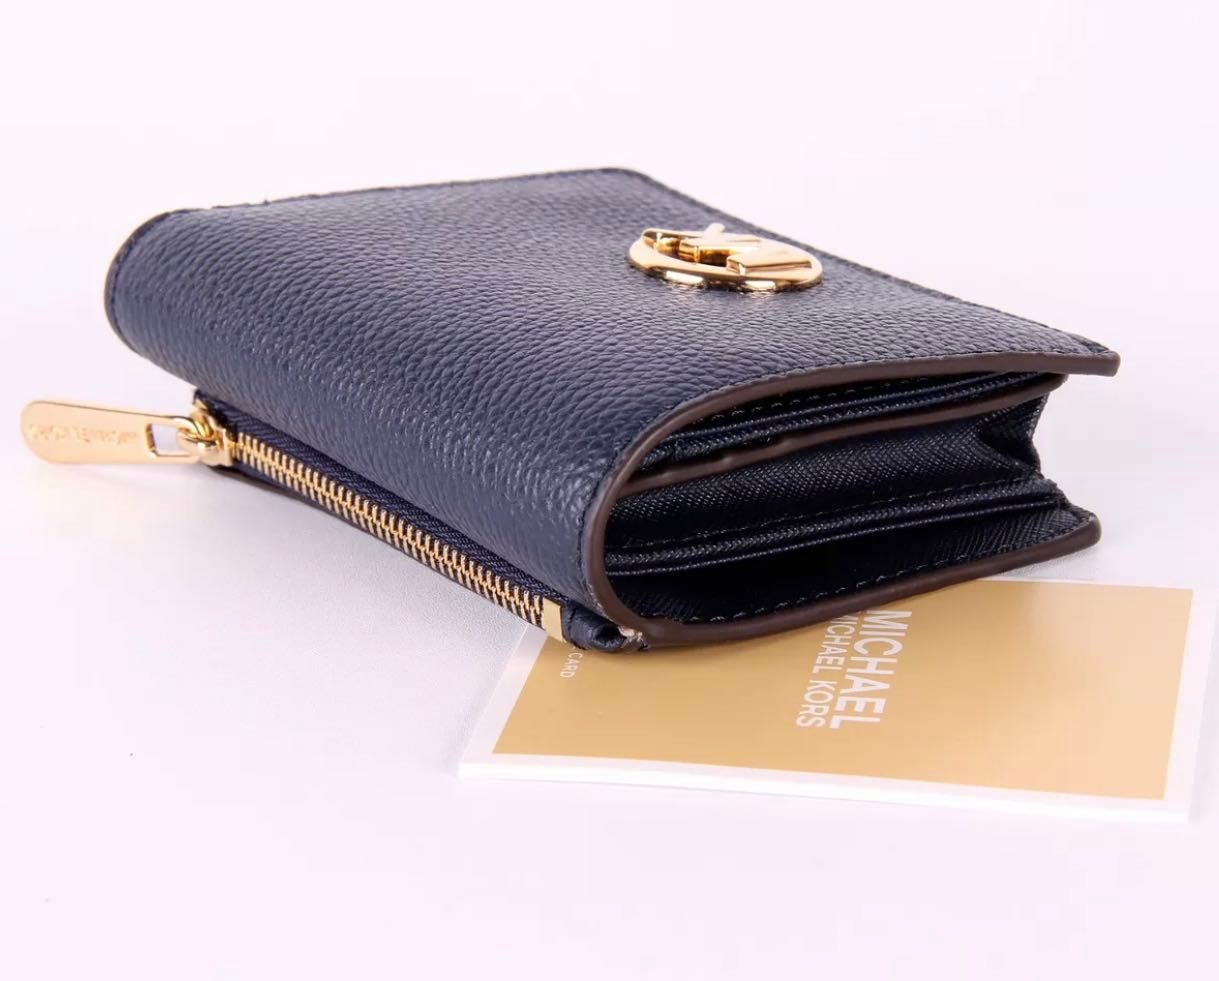 b406e9fbcae64c Sale: New Michael Kors Fulton Leather Card Case Coin Purse Wallet ...